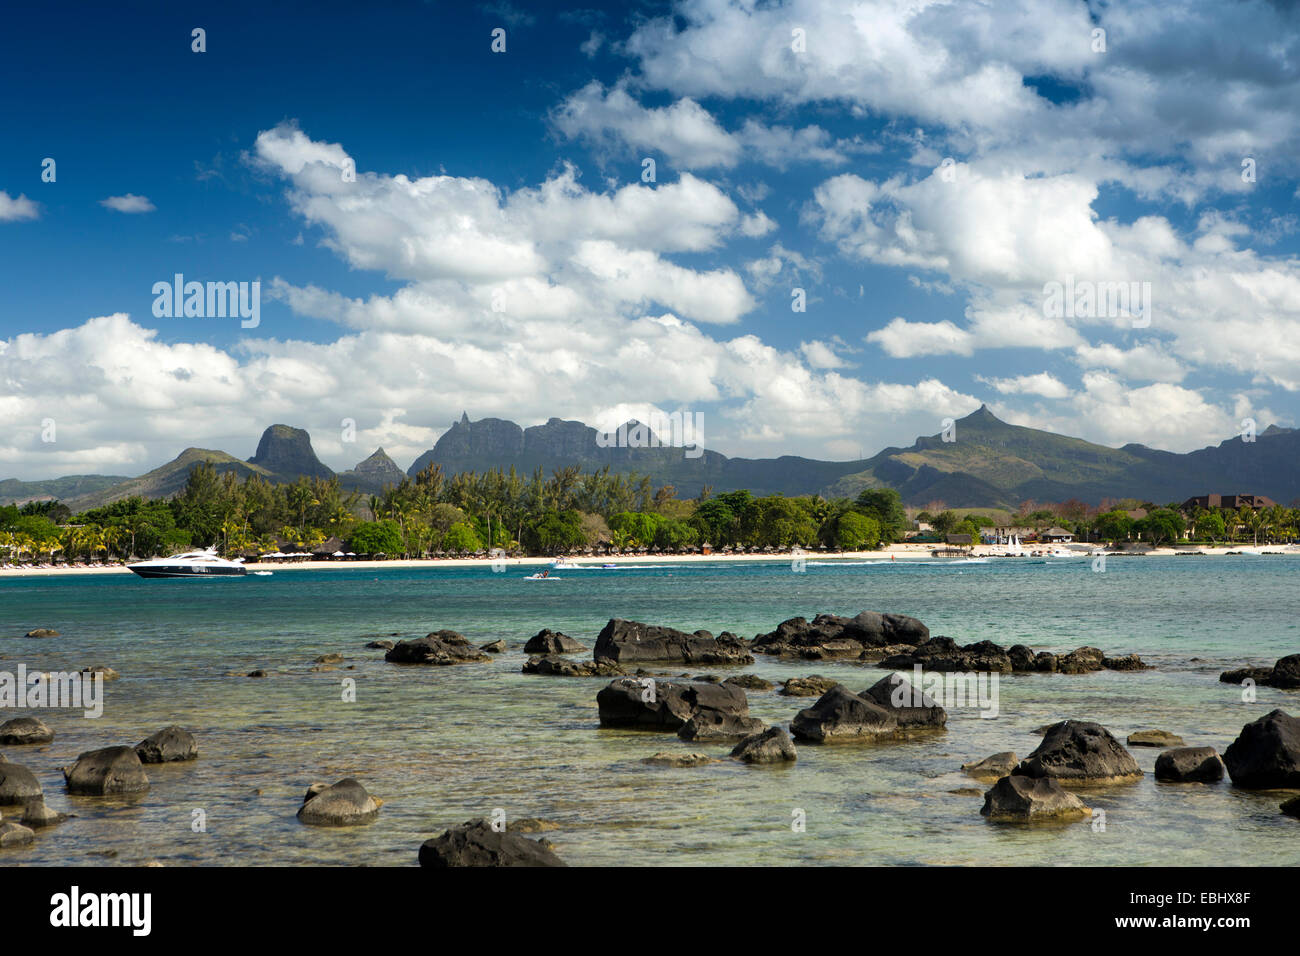 Mauritius, Pointe aux Piments, Mount Pieter Both and coastal mountains from Turtle Bay - Stock Image